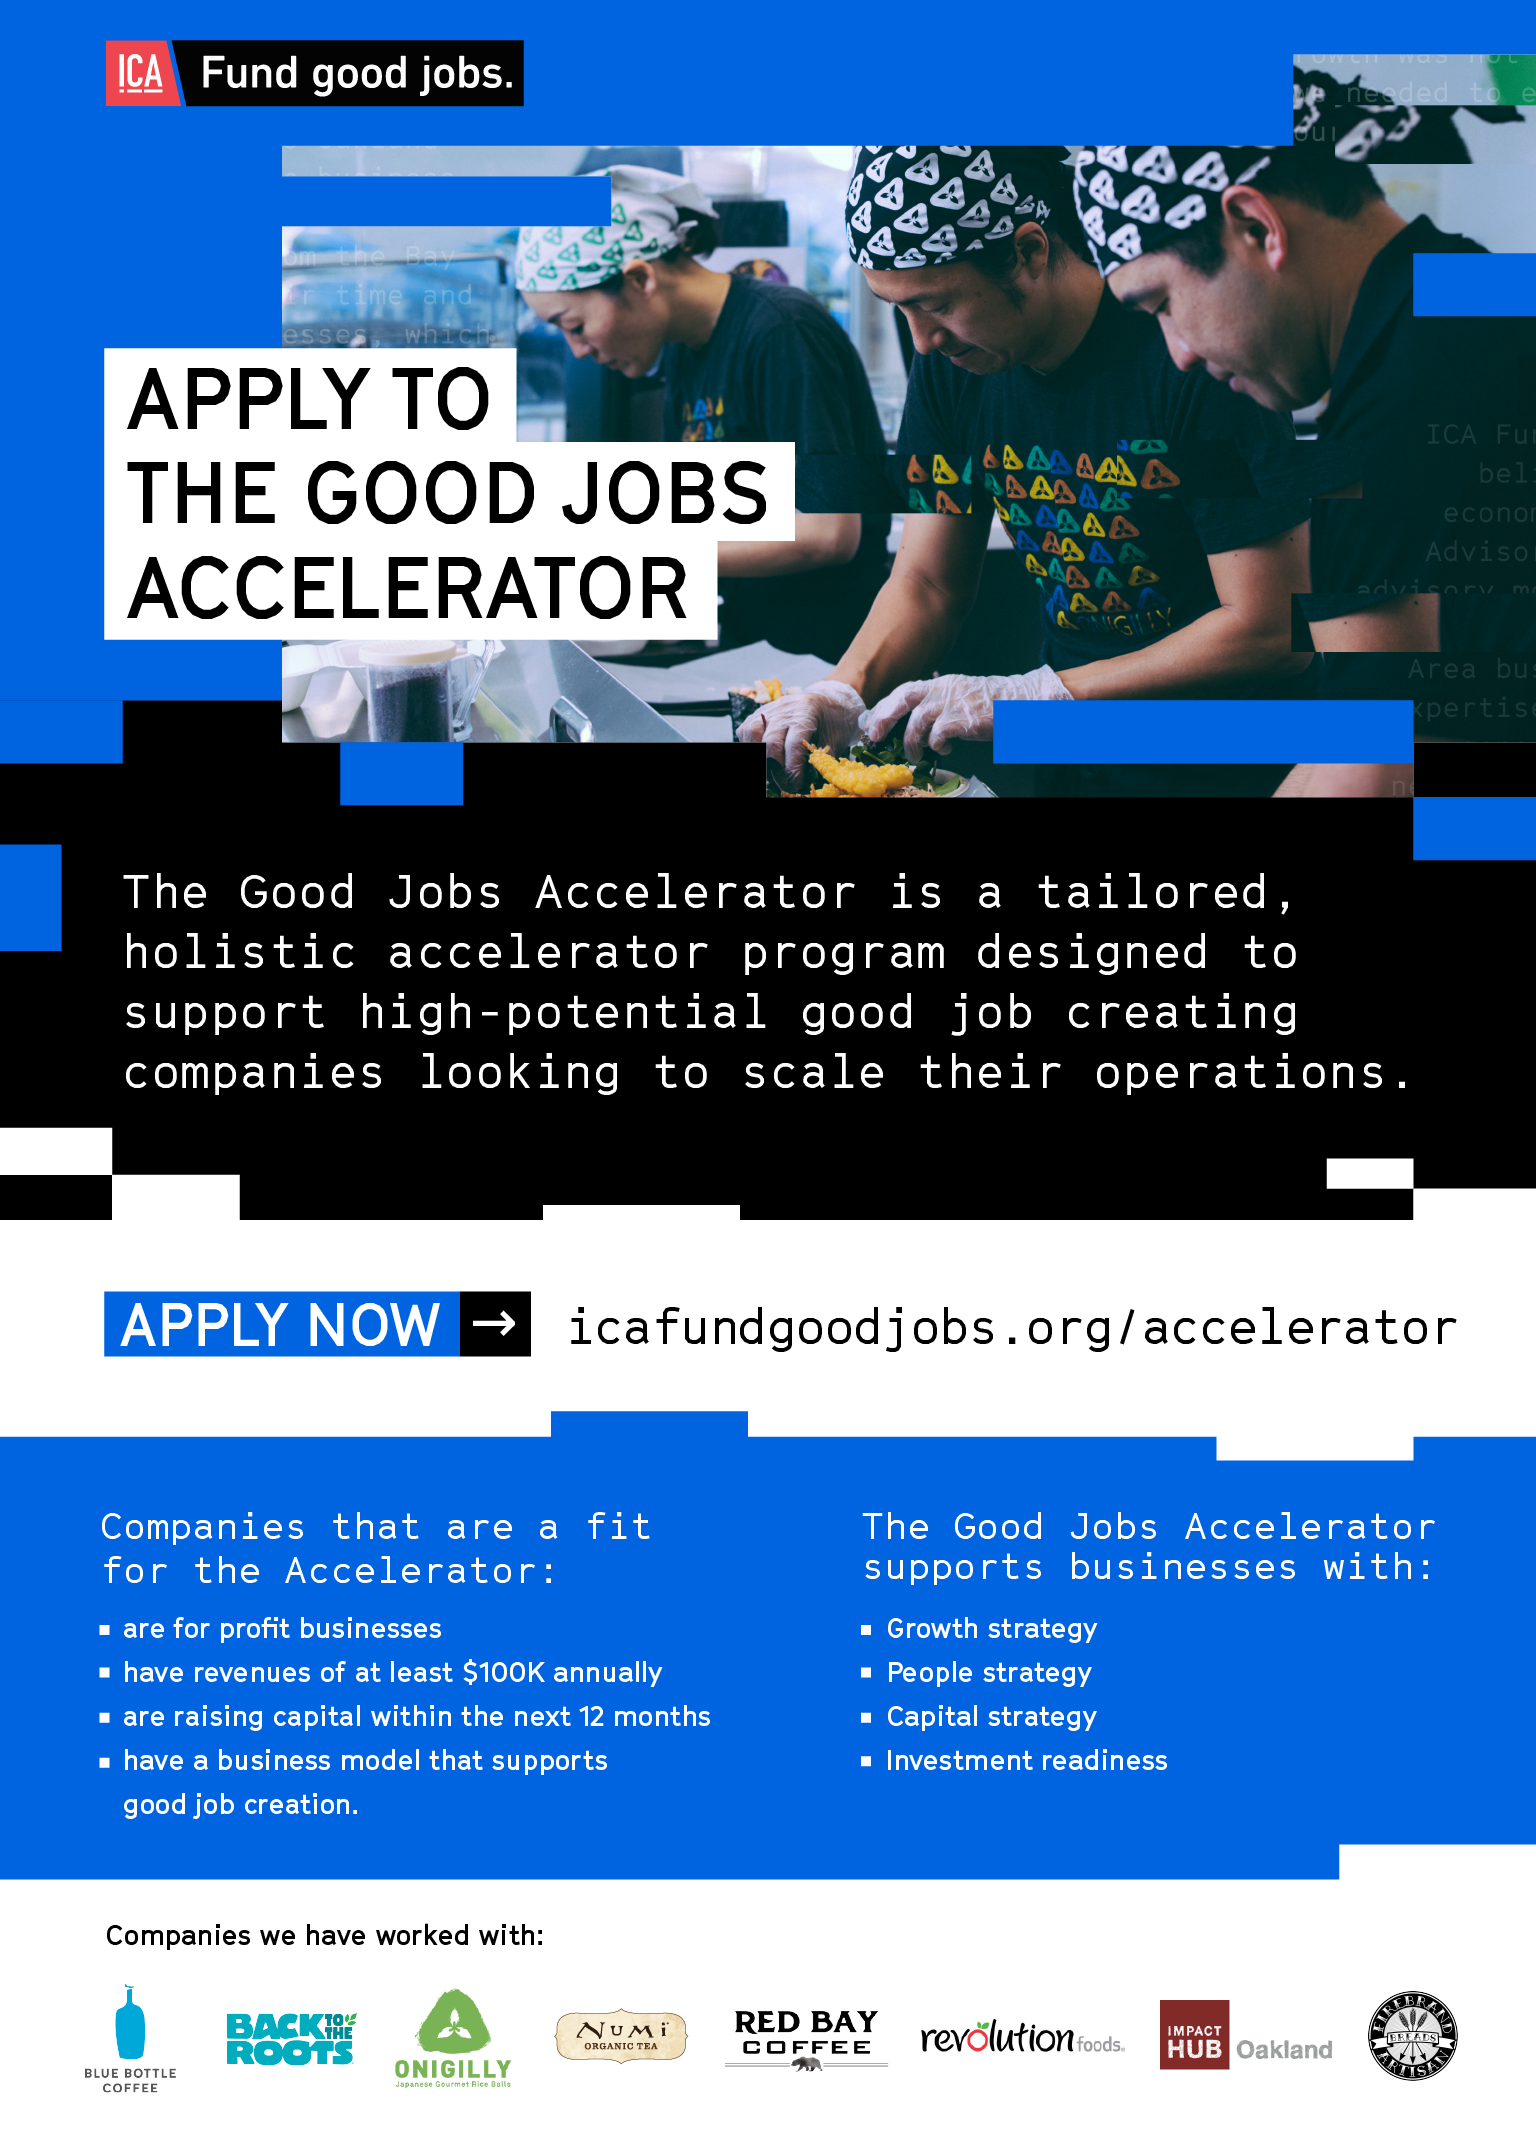 Download the digital Accelerator Flyer!